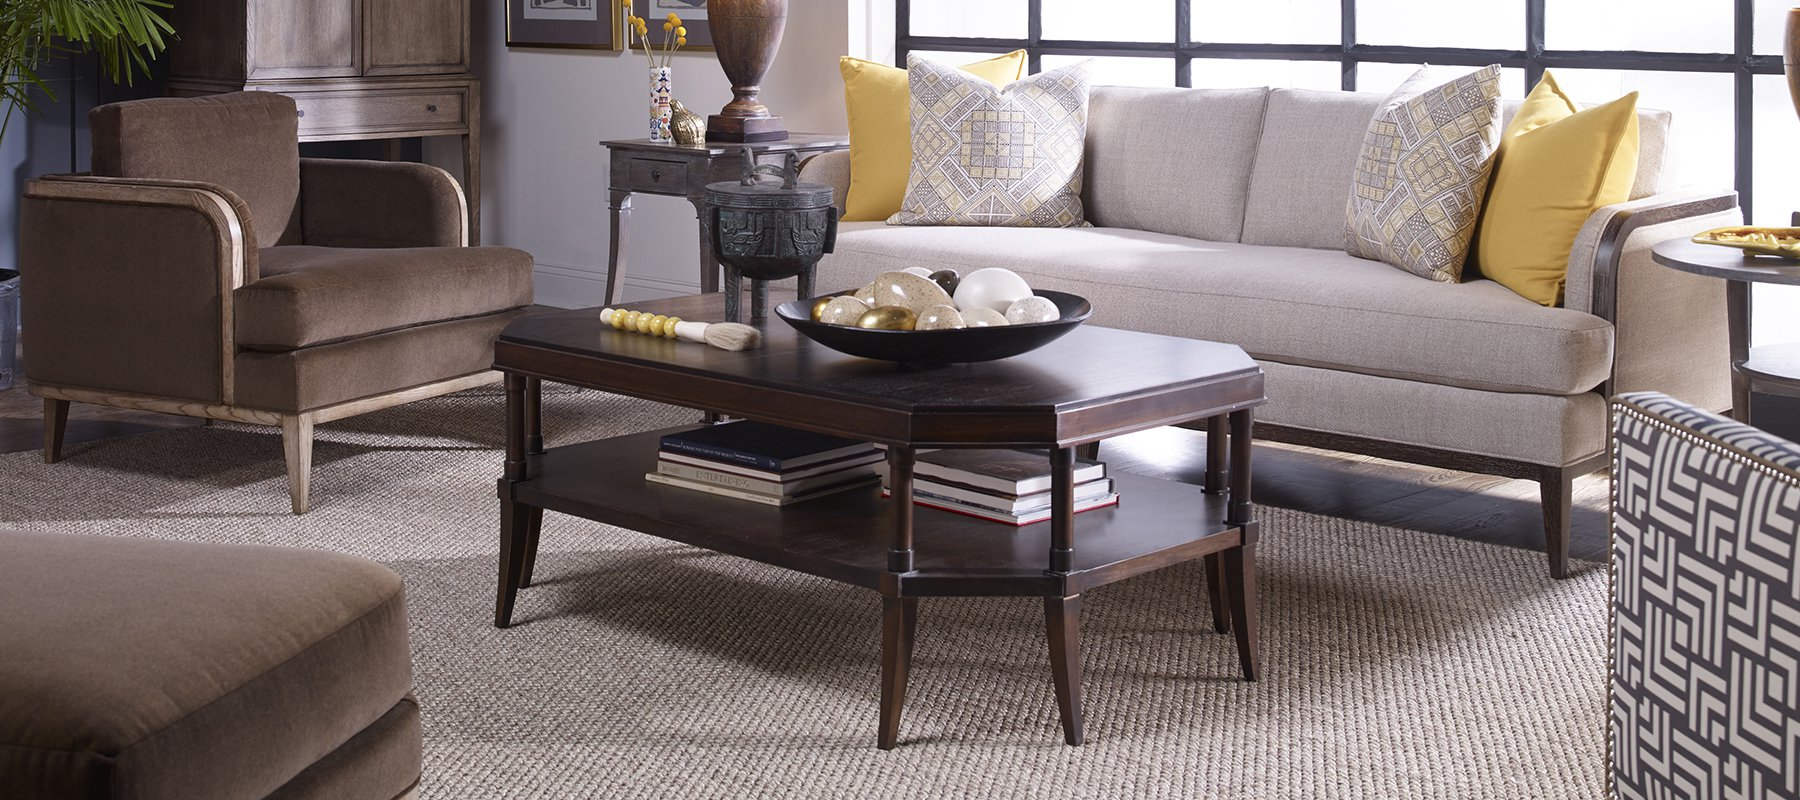 coffee table accent side bernhardt round modern tables for living inspired room accents ideas pottery barn mercury glass floor lamp crystal lamps chair and set live edge wood